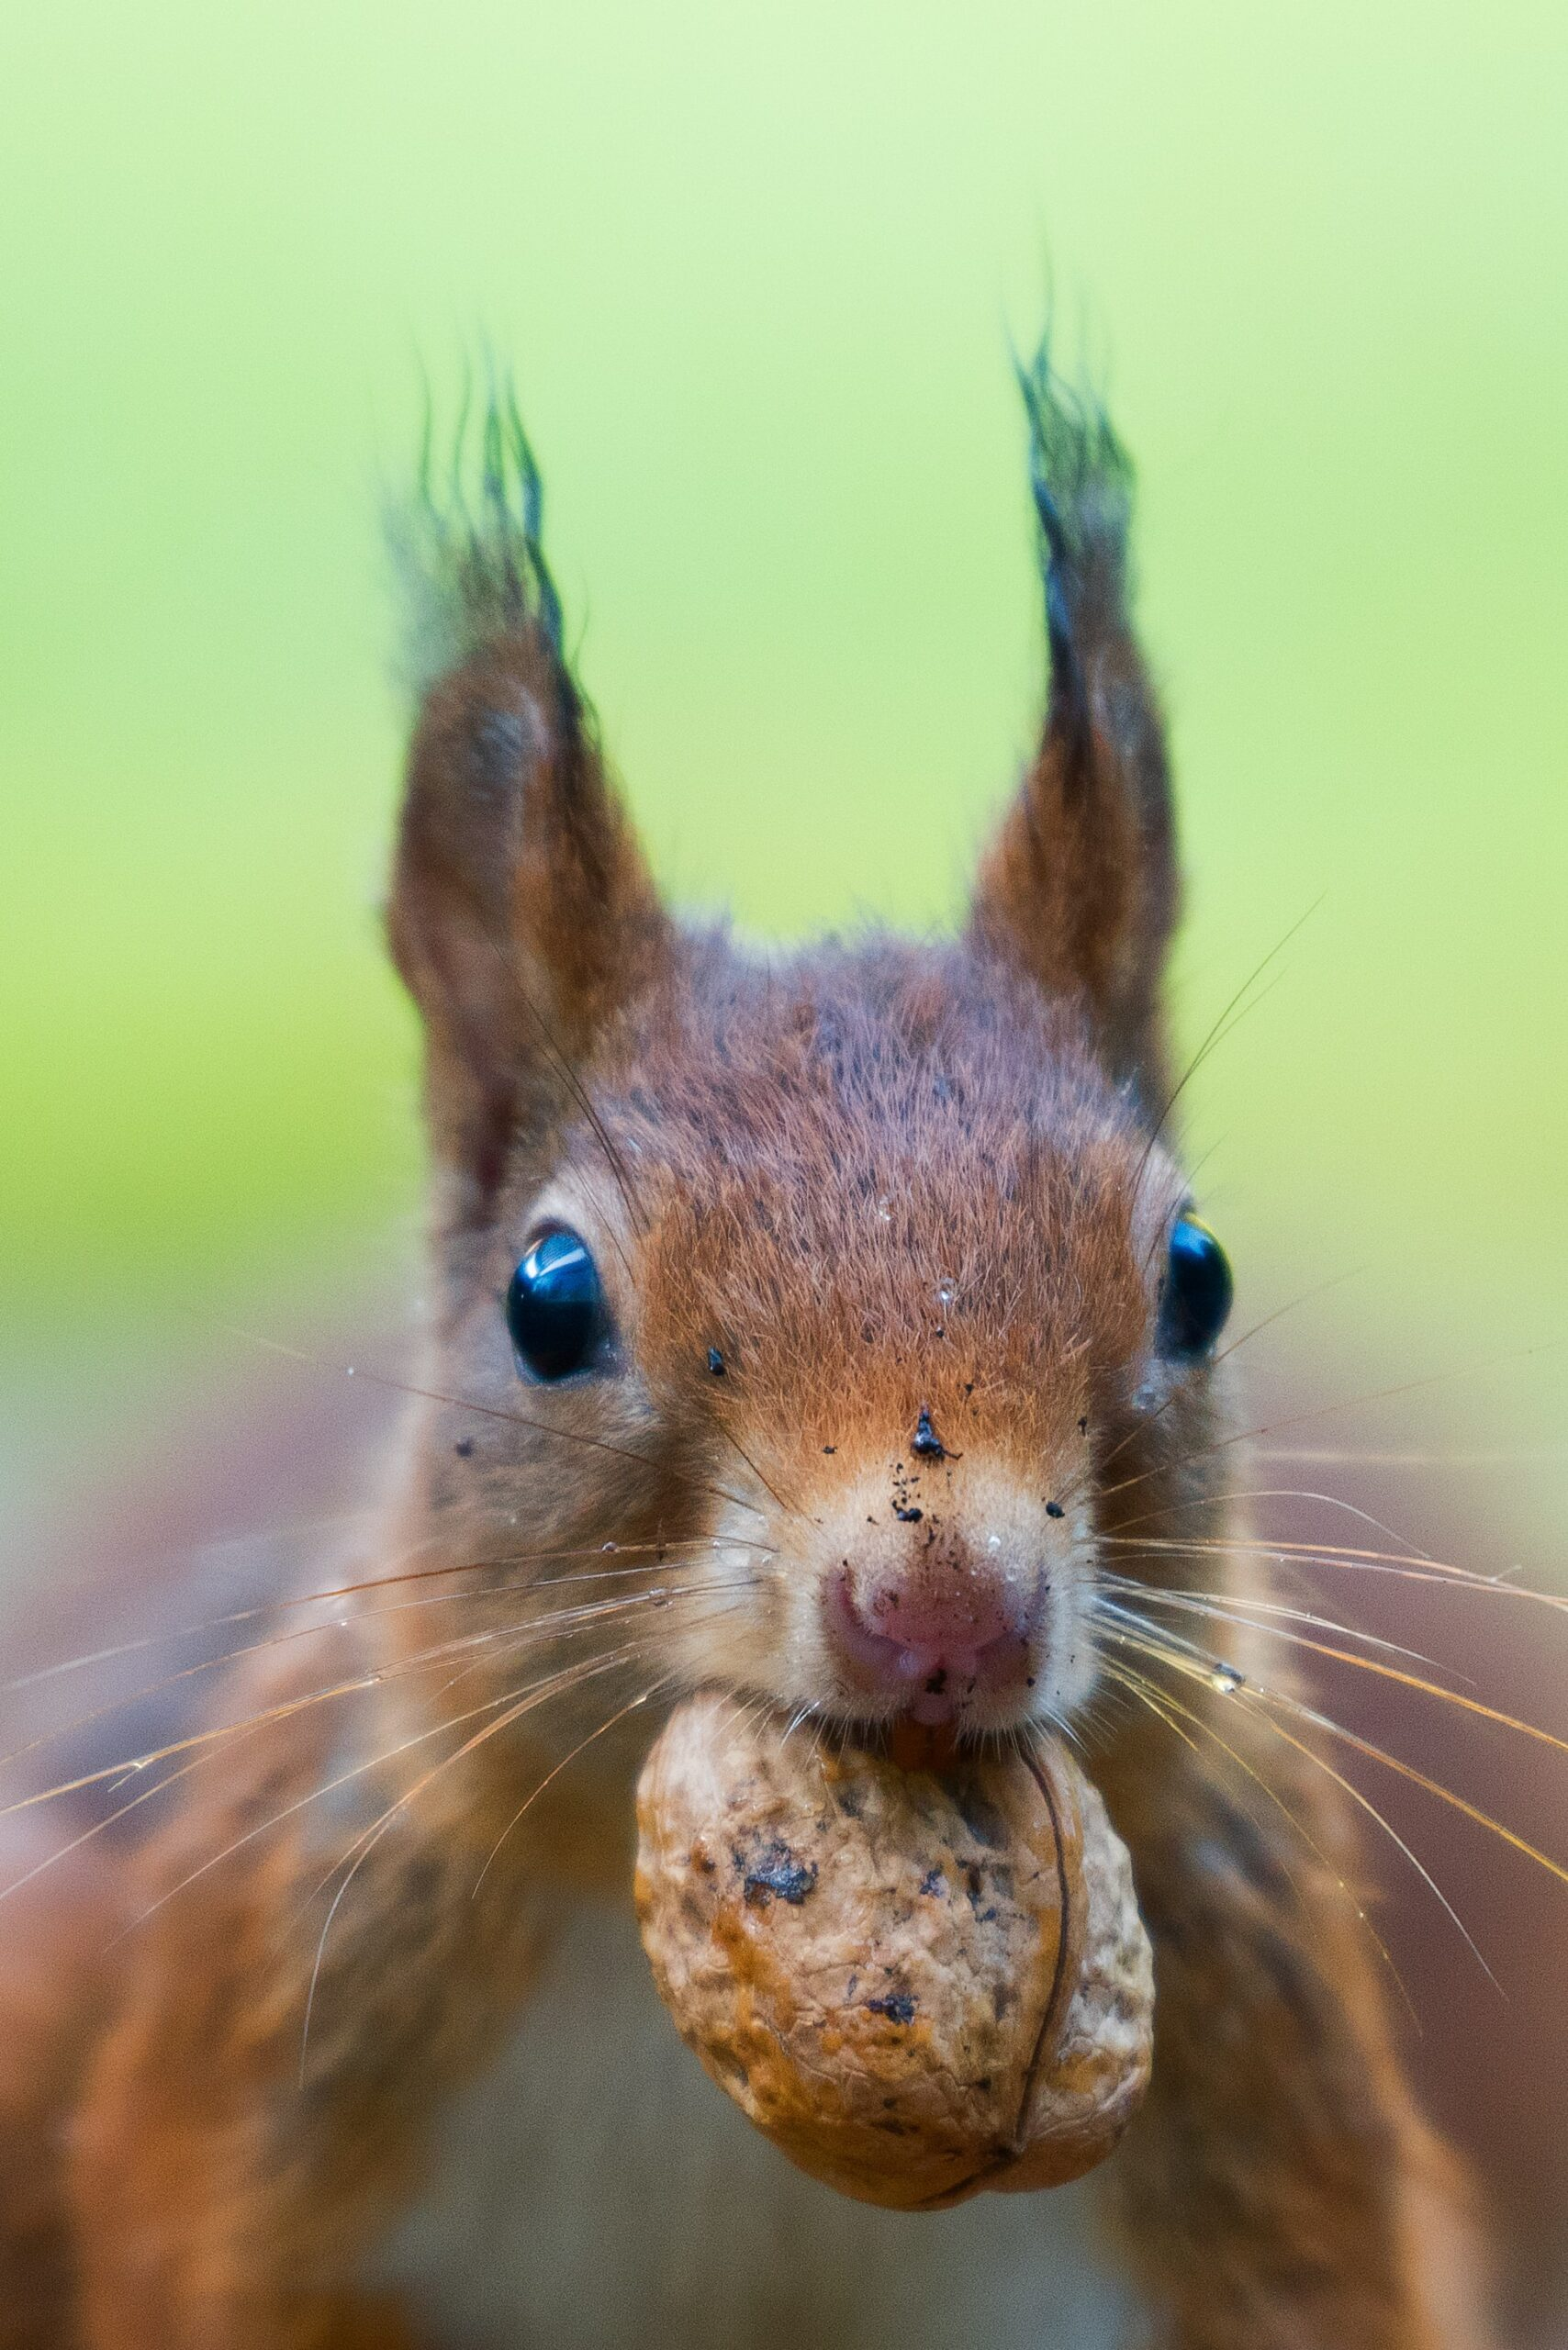 Red squirrel looking alert with a nut in its mouth